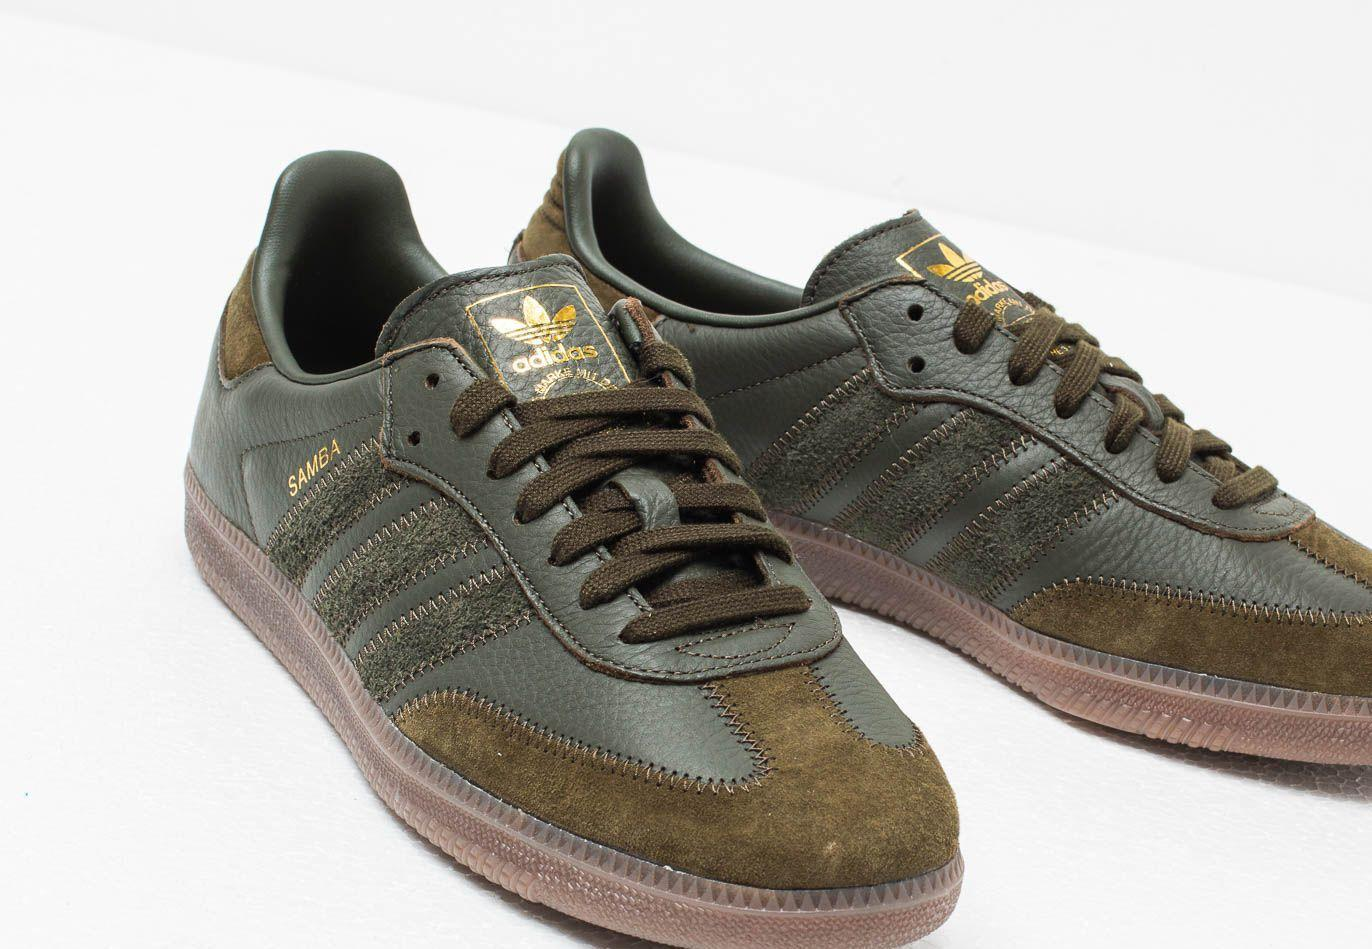 buy good size 40 popular stores Samba Og Ft Shoes